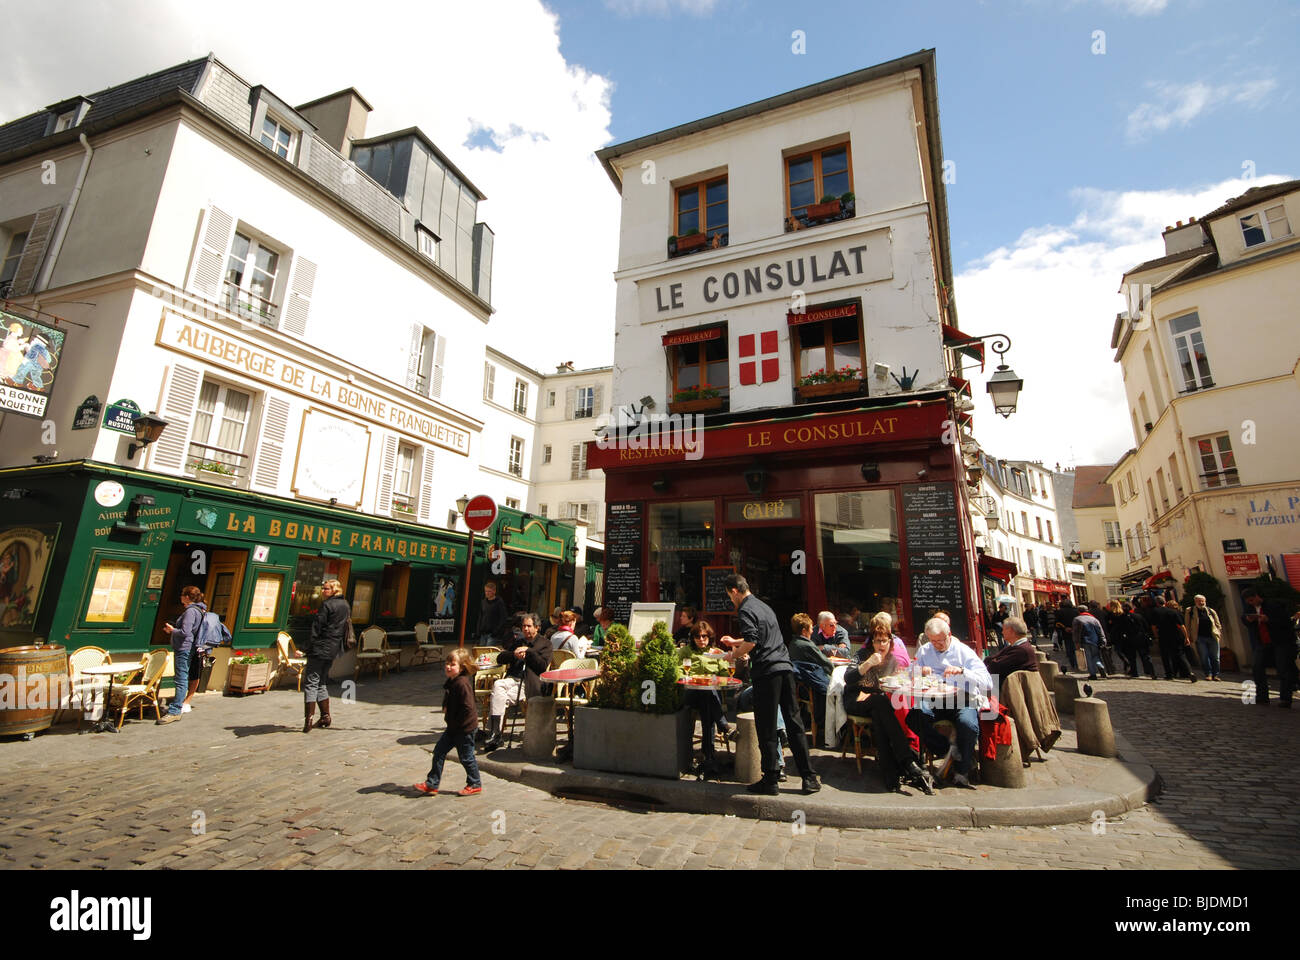 Restaurant le consulat montmartre paris france stock photo for Restaurant miroir montmartre